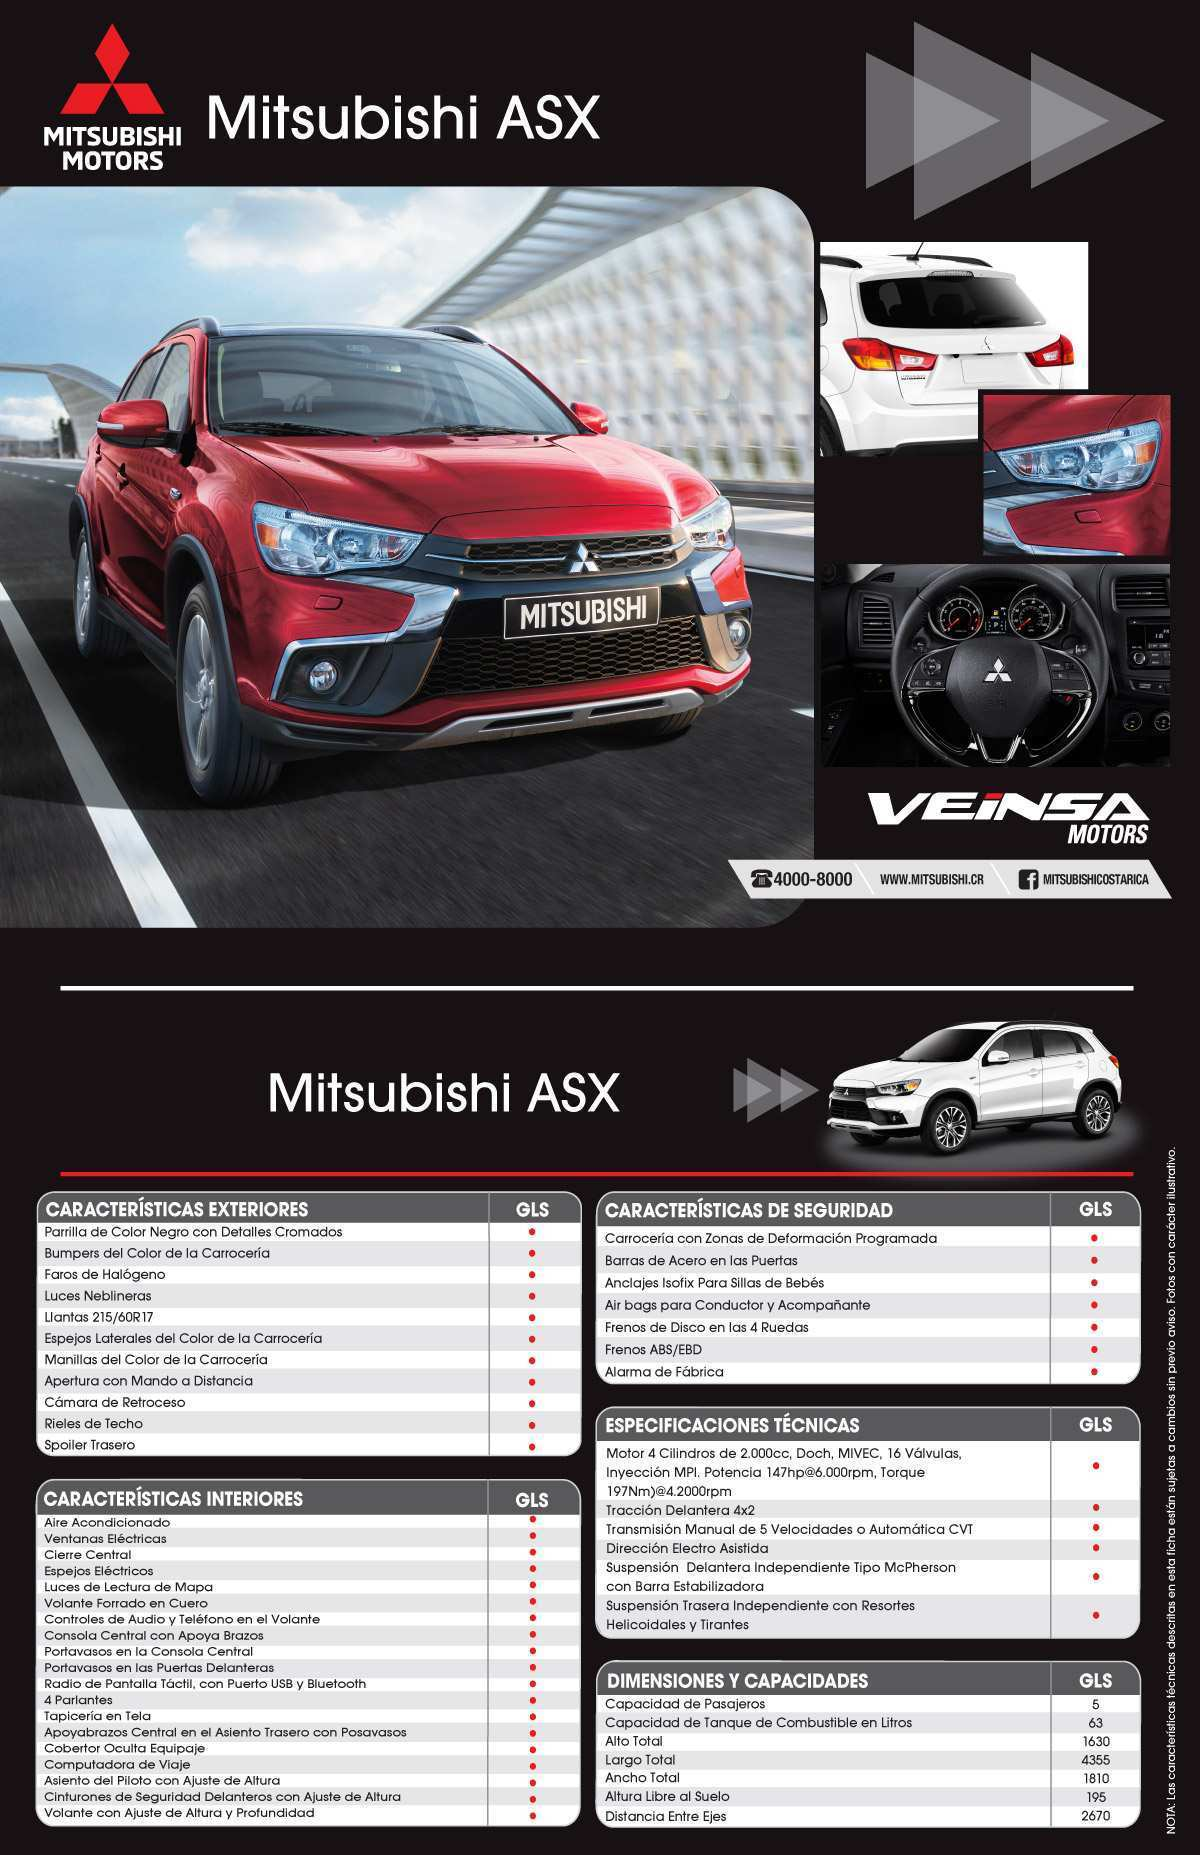 50 The Best Mitsubishi Asx 2020 Ficha Tecnica New Model And Performance